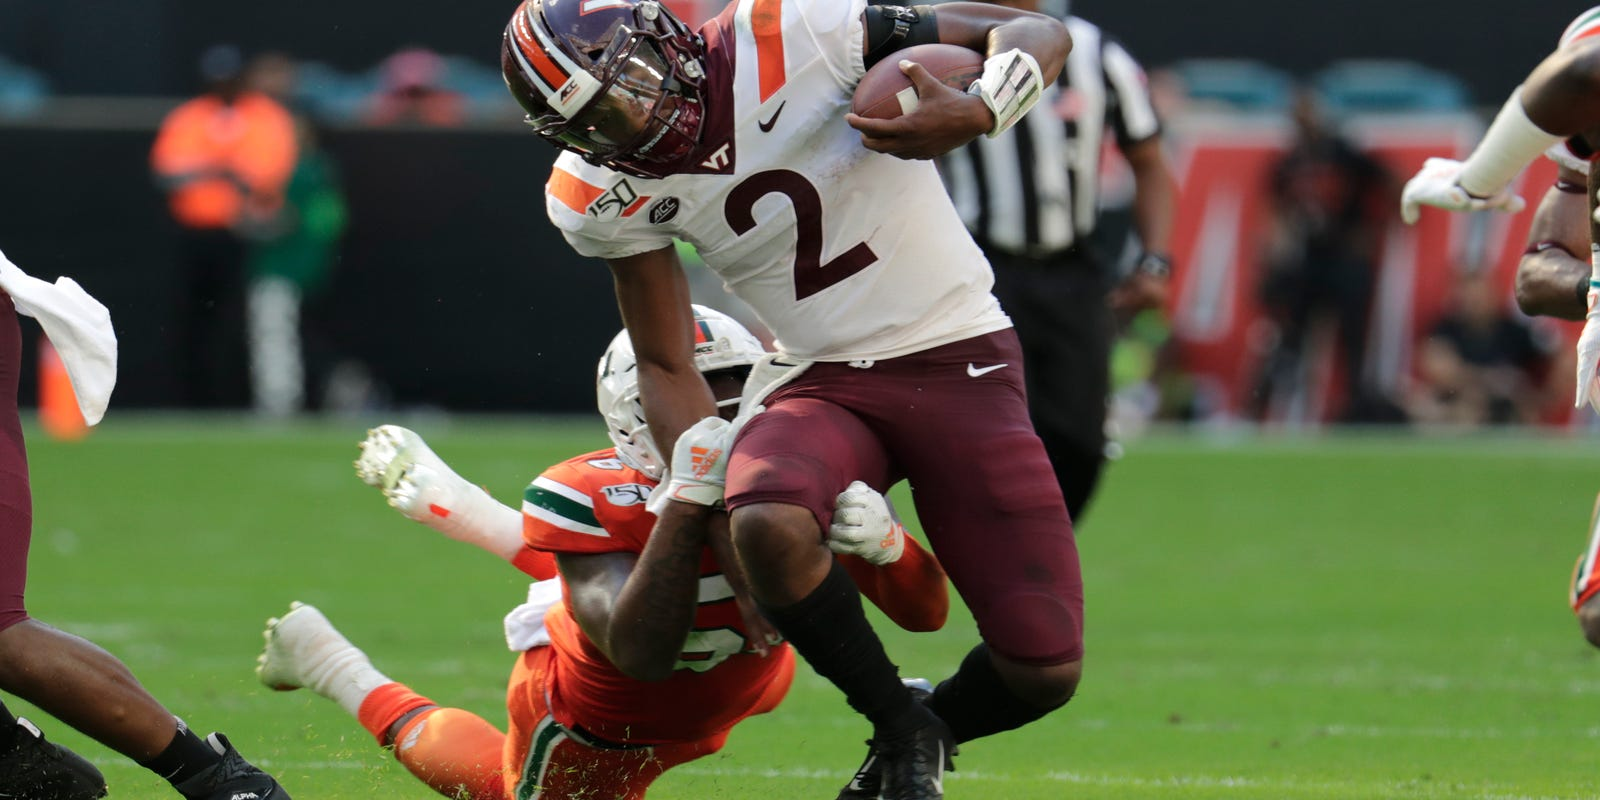 What you should know about Virginia Tech, Kentucky football's Belk Bowl opponent